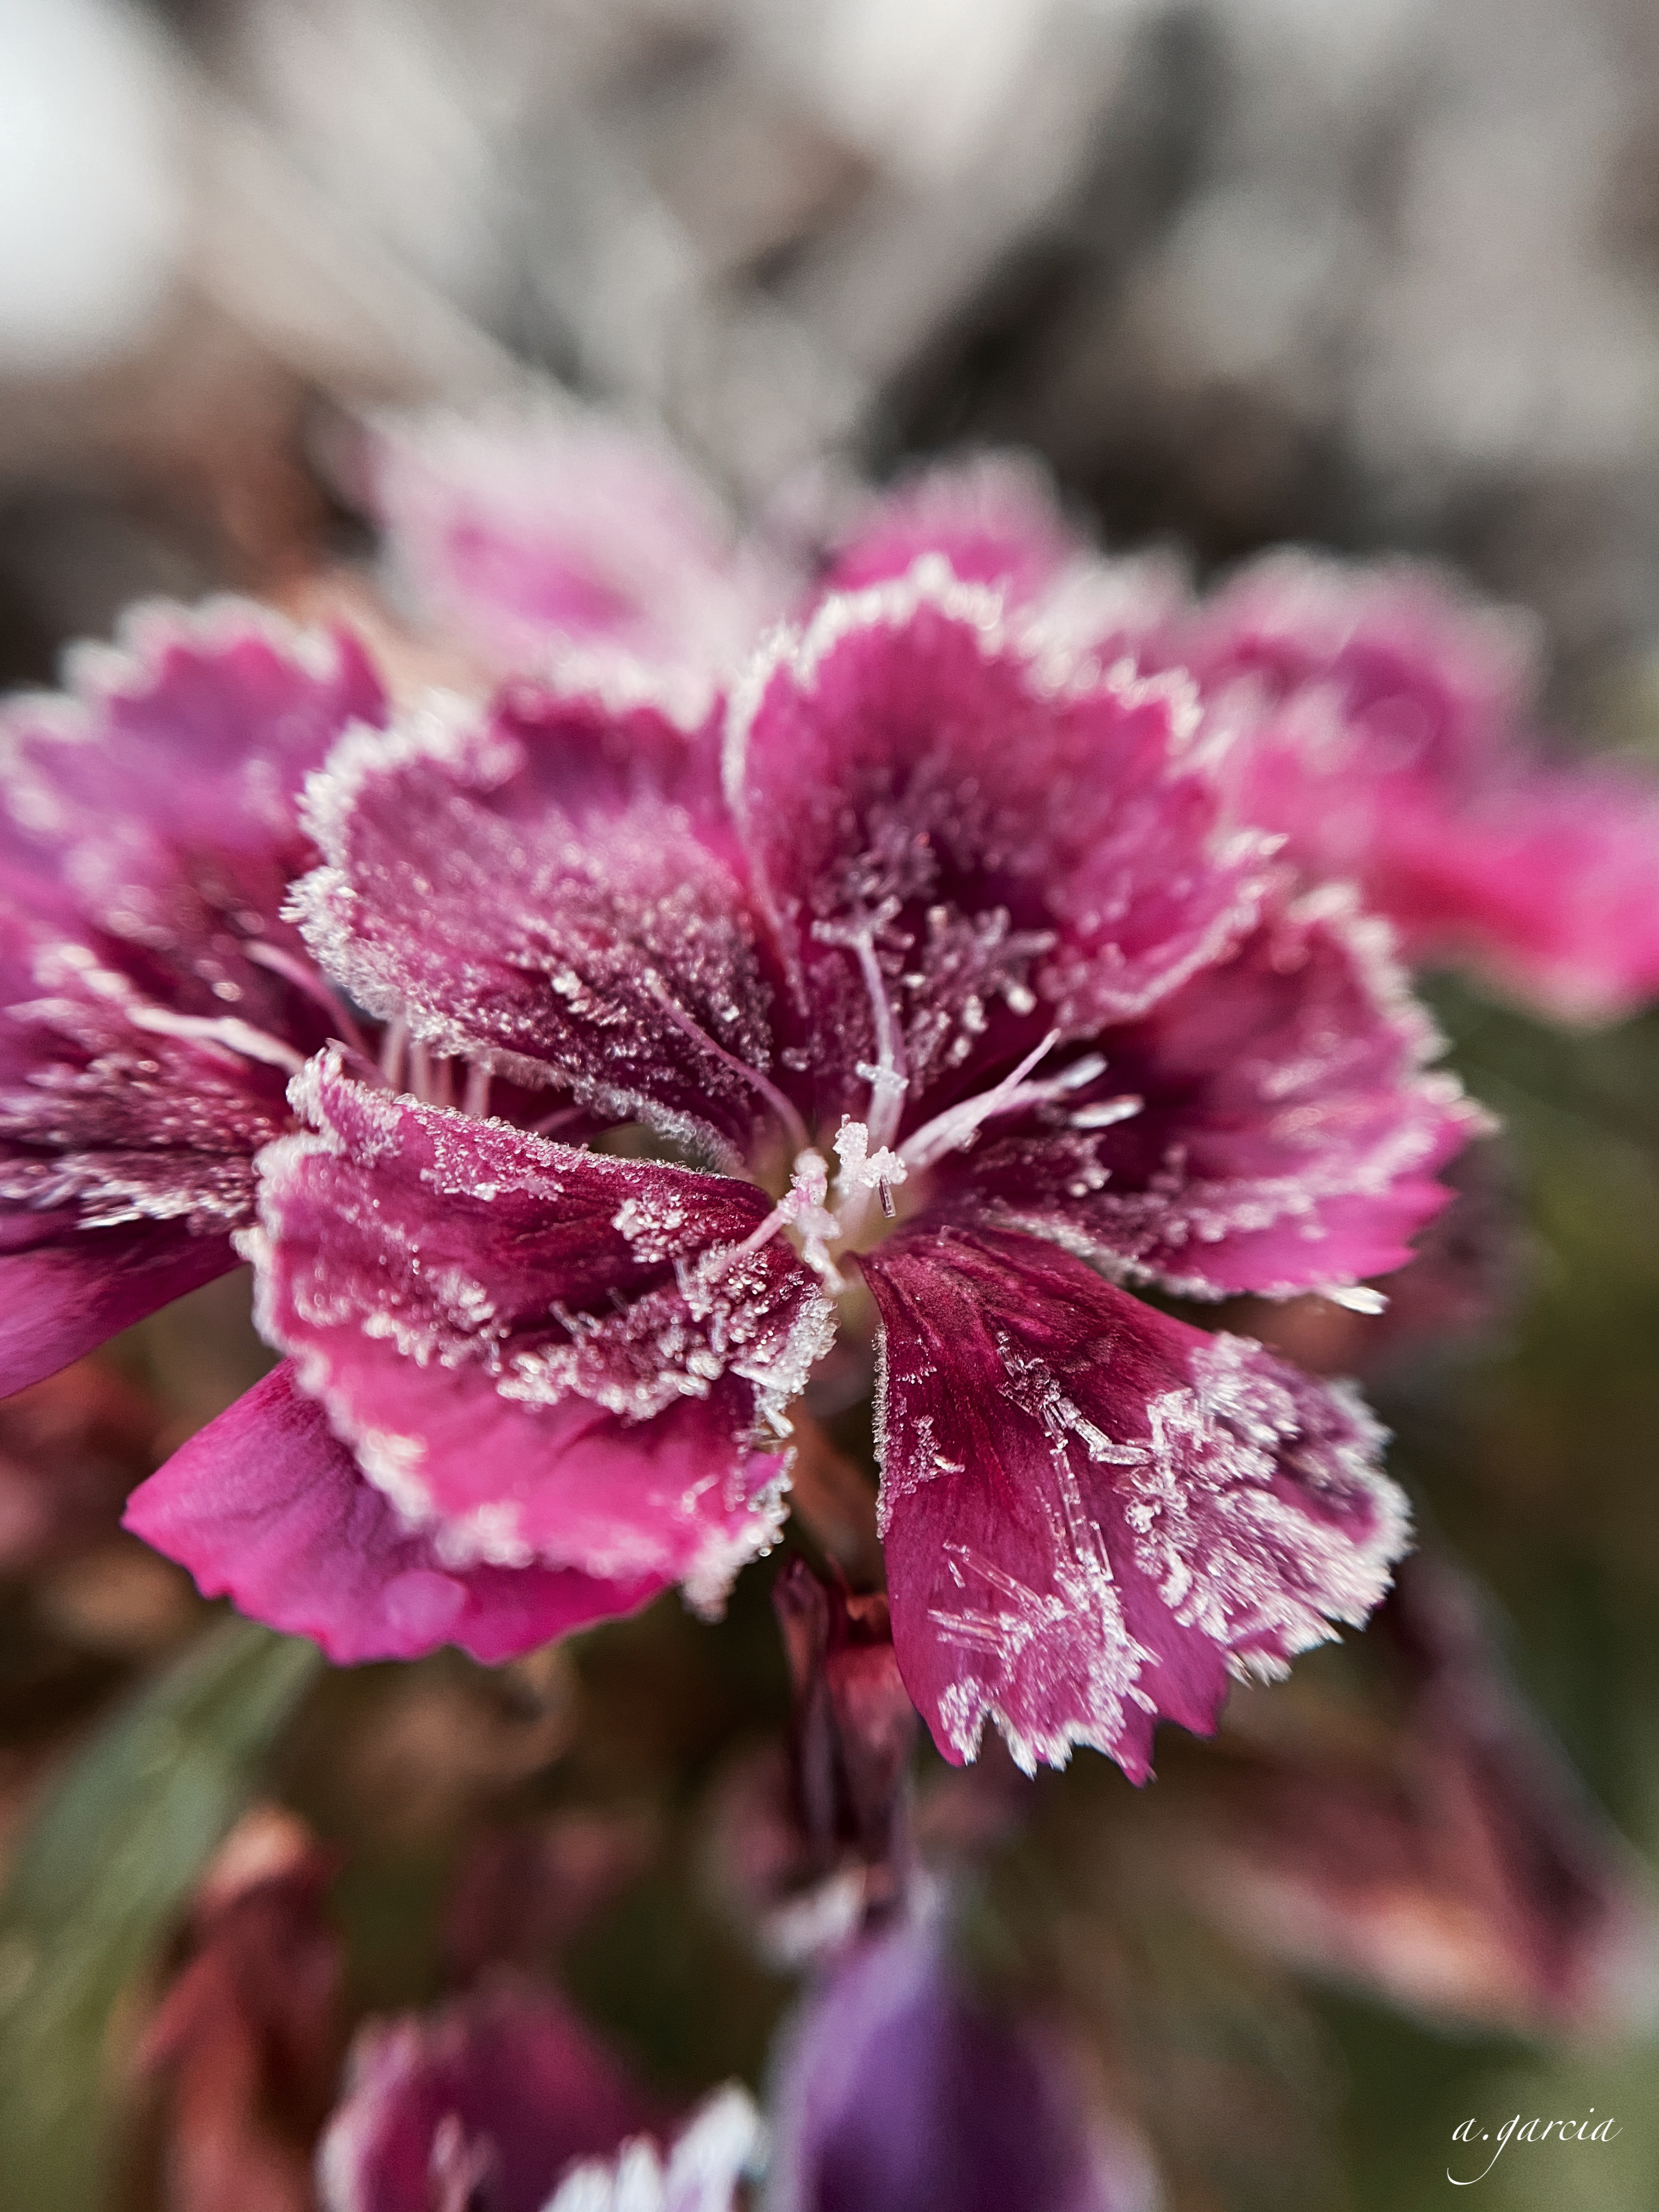 A frosty dianthus